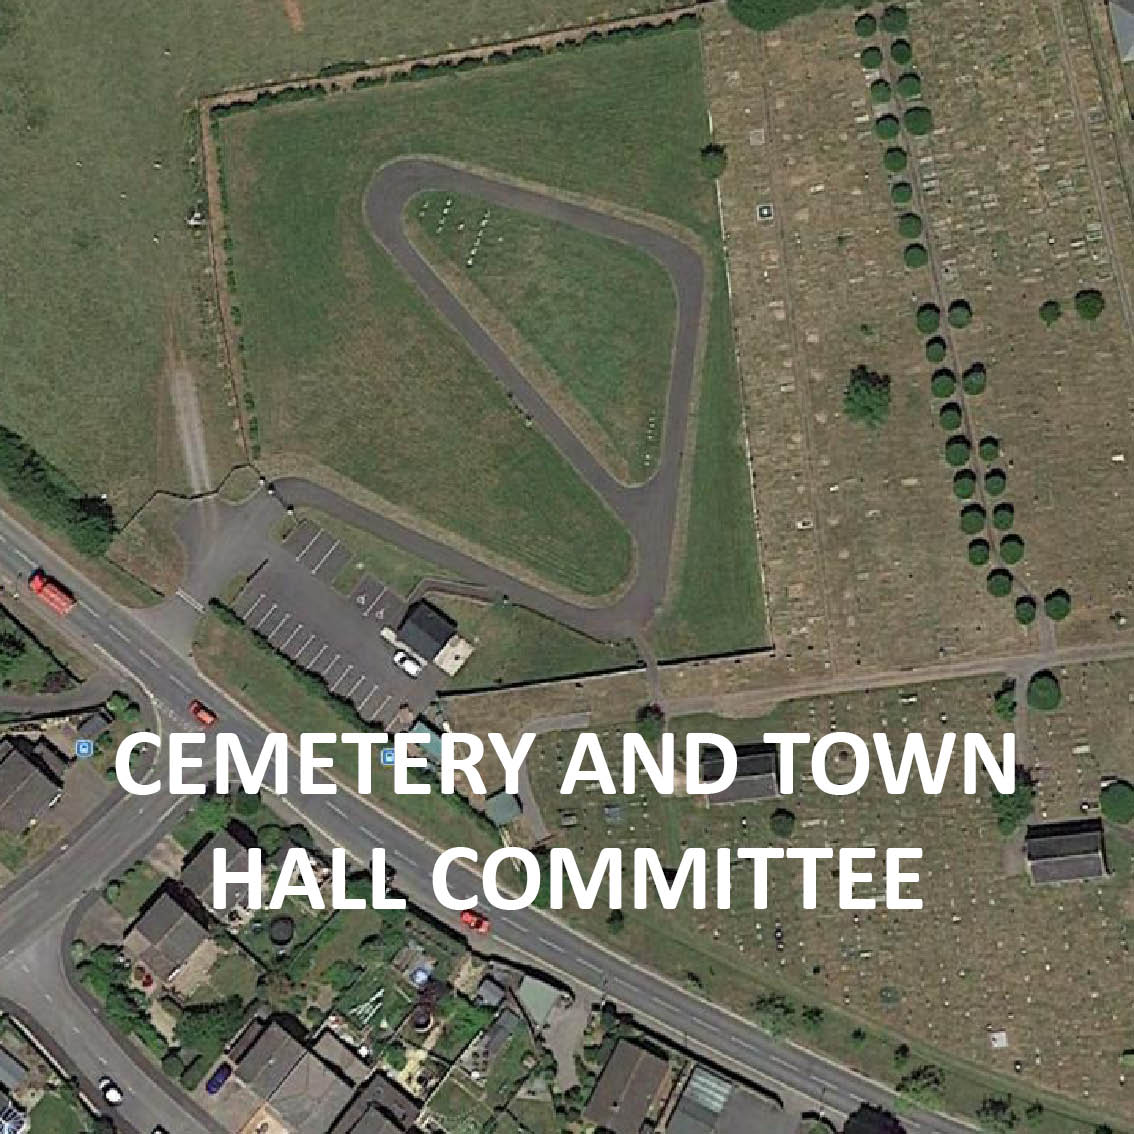 Hyperlink to the Cemetery and Town Hall Committee meetings